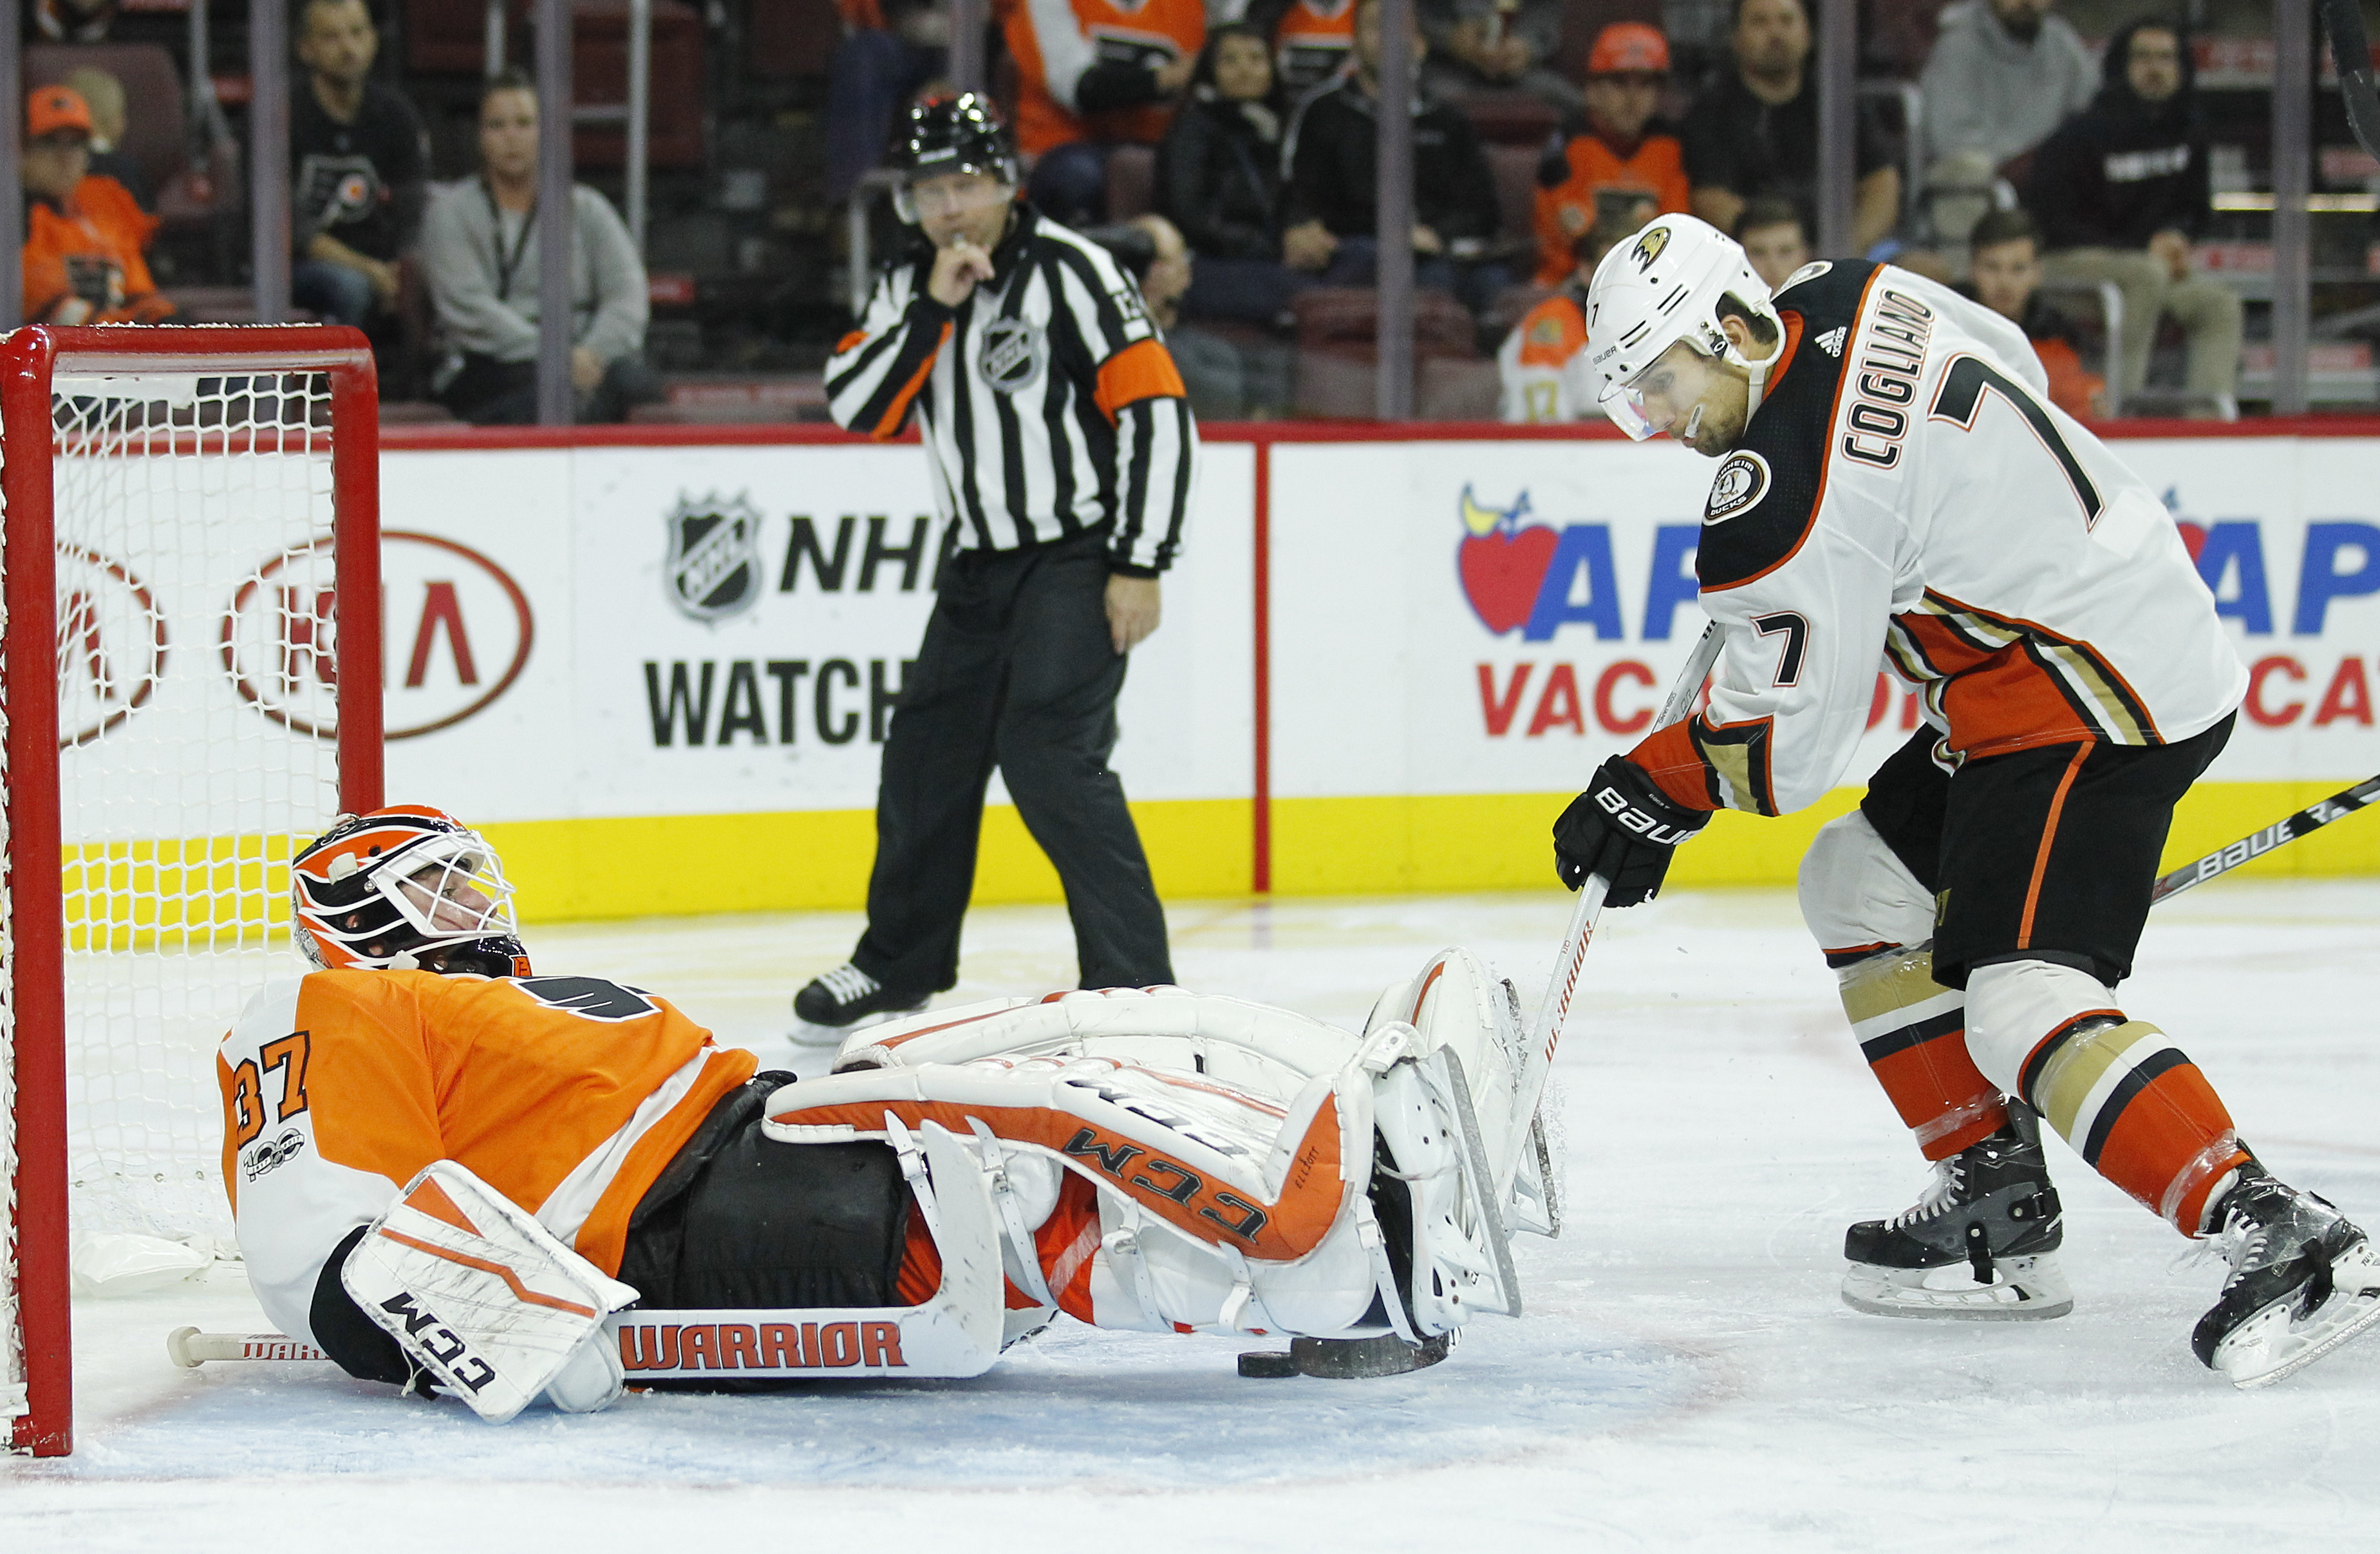 Anaheim´s Andrew Cogliano, right, pokes at a loose puck under the skates of Flyers goalie Brian Elliott. The Flyers lost 6-2. (AP Photo/Tom Mihalek) .